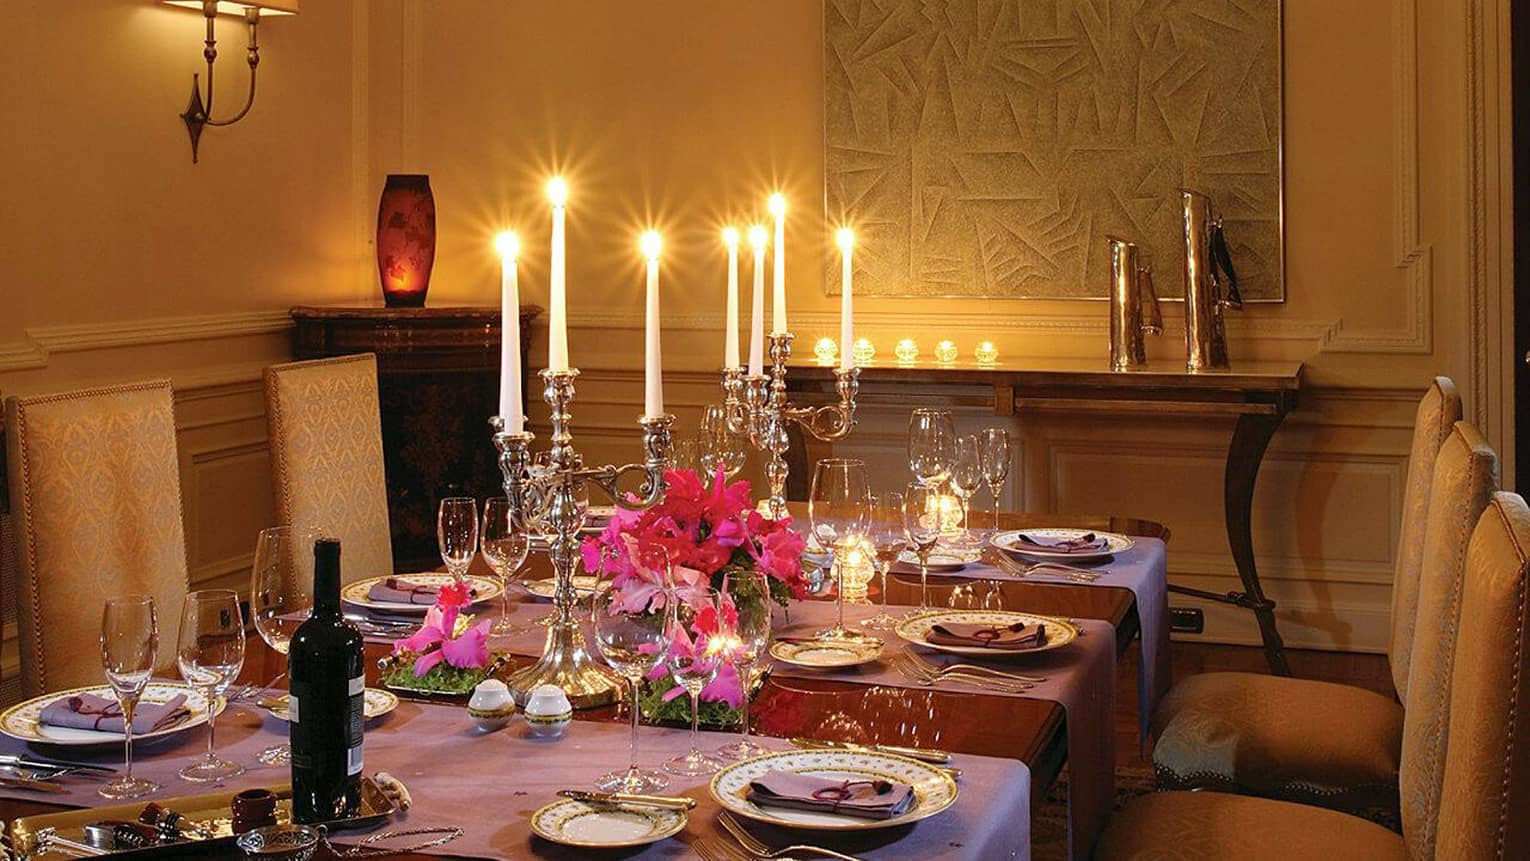 Elegant formal dining table with purple tablecloths, large silver candelabras with glowing candles, gold patterned chairs